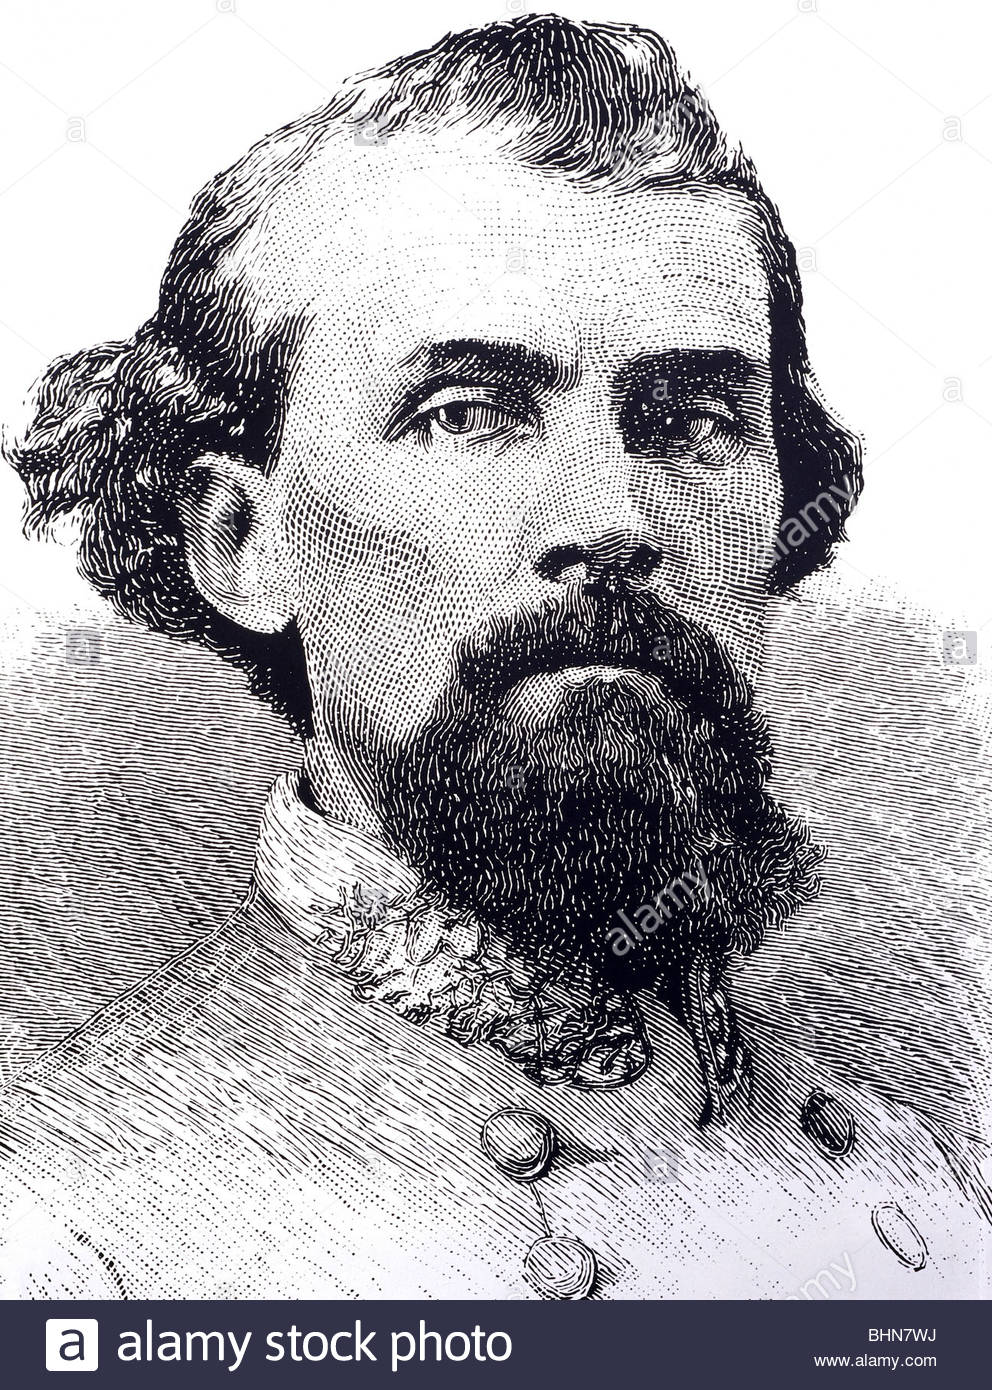 Forrest, Nathan Bedford, 13.7.1821 - 29.10.1877, American general (Confederate Army), founder of the Ku Klux Klan - Stock Image